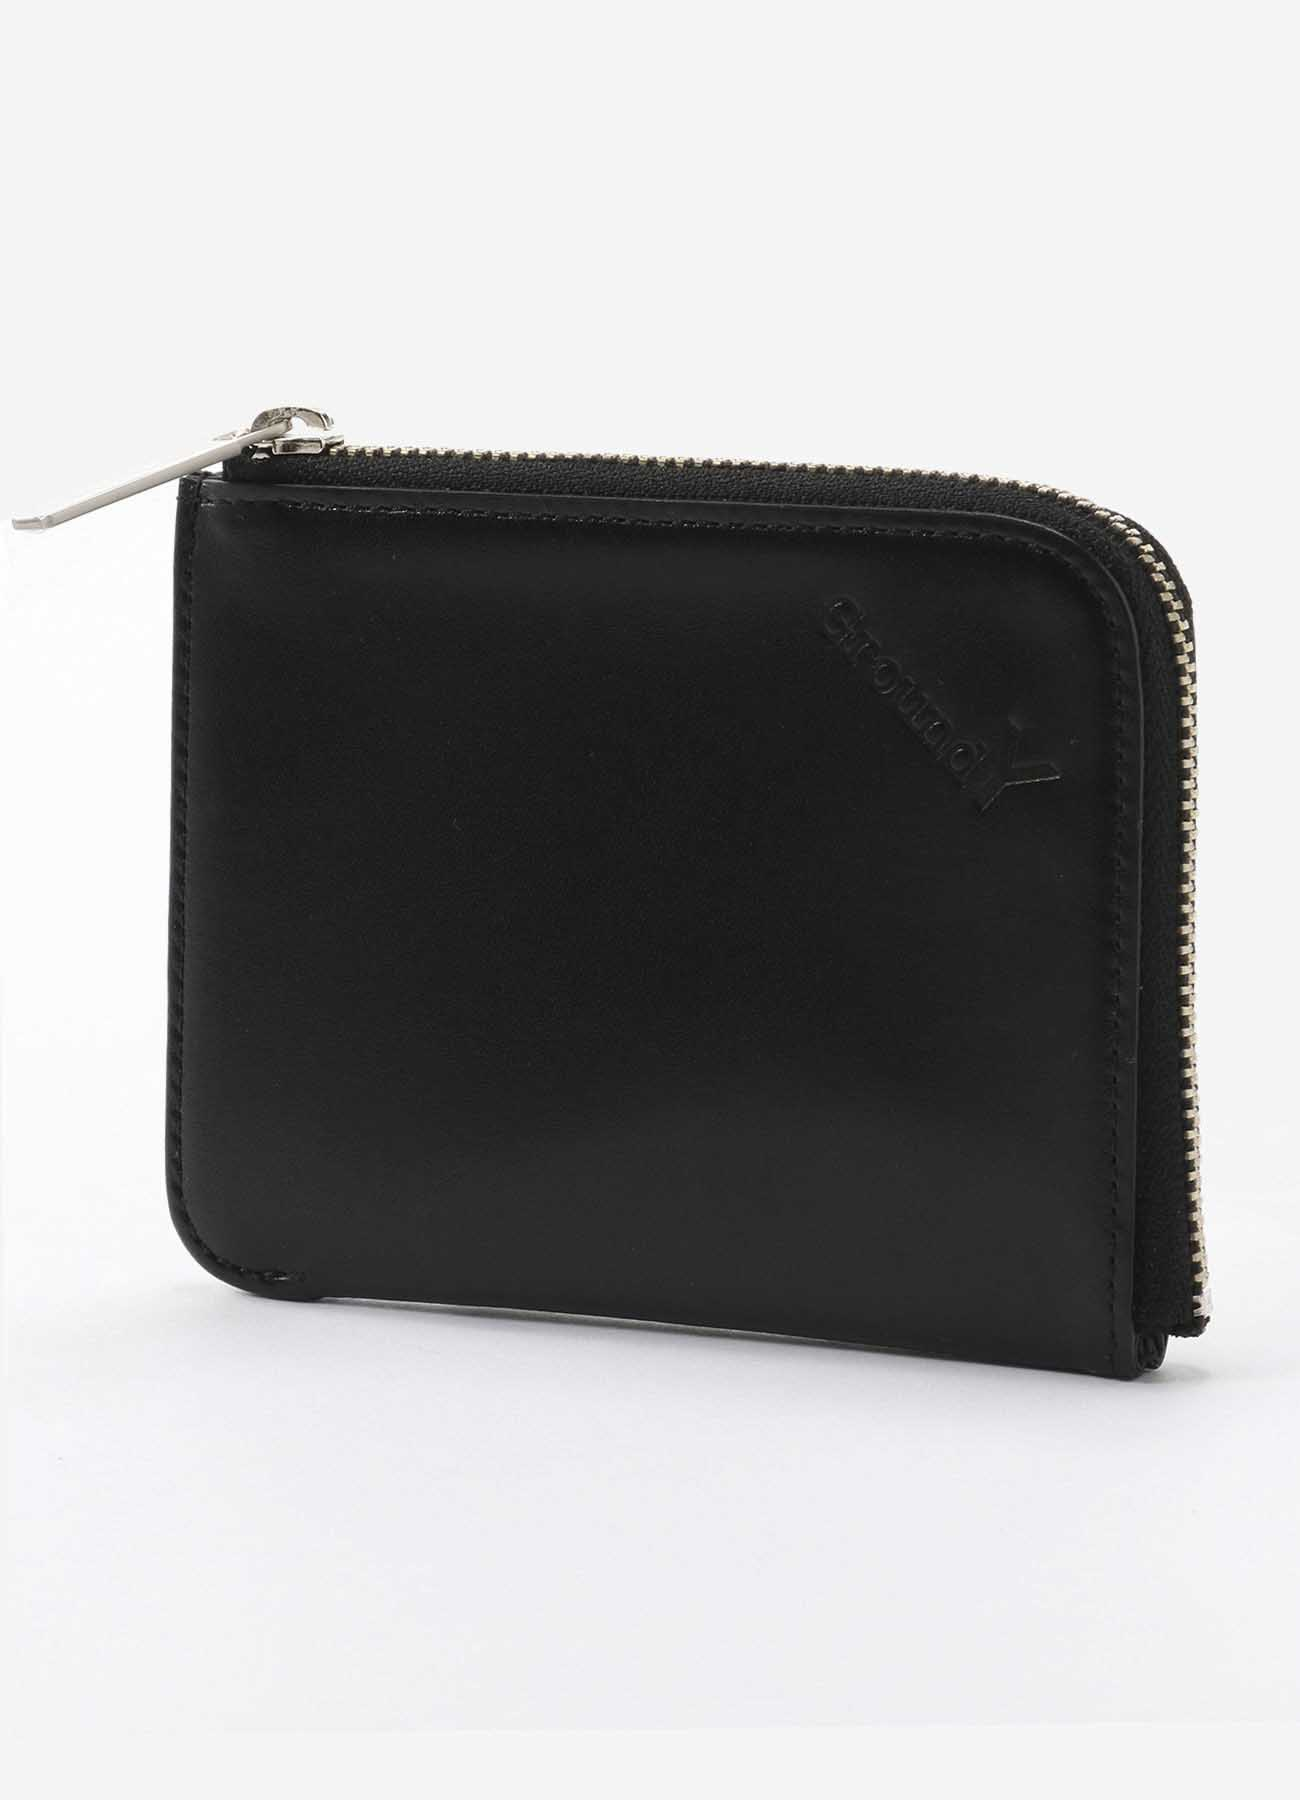 L-Shaped Opening Wallet